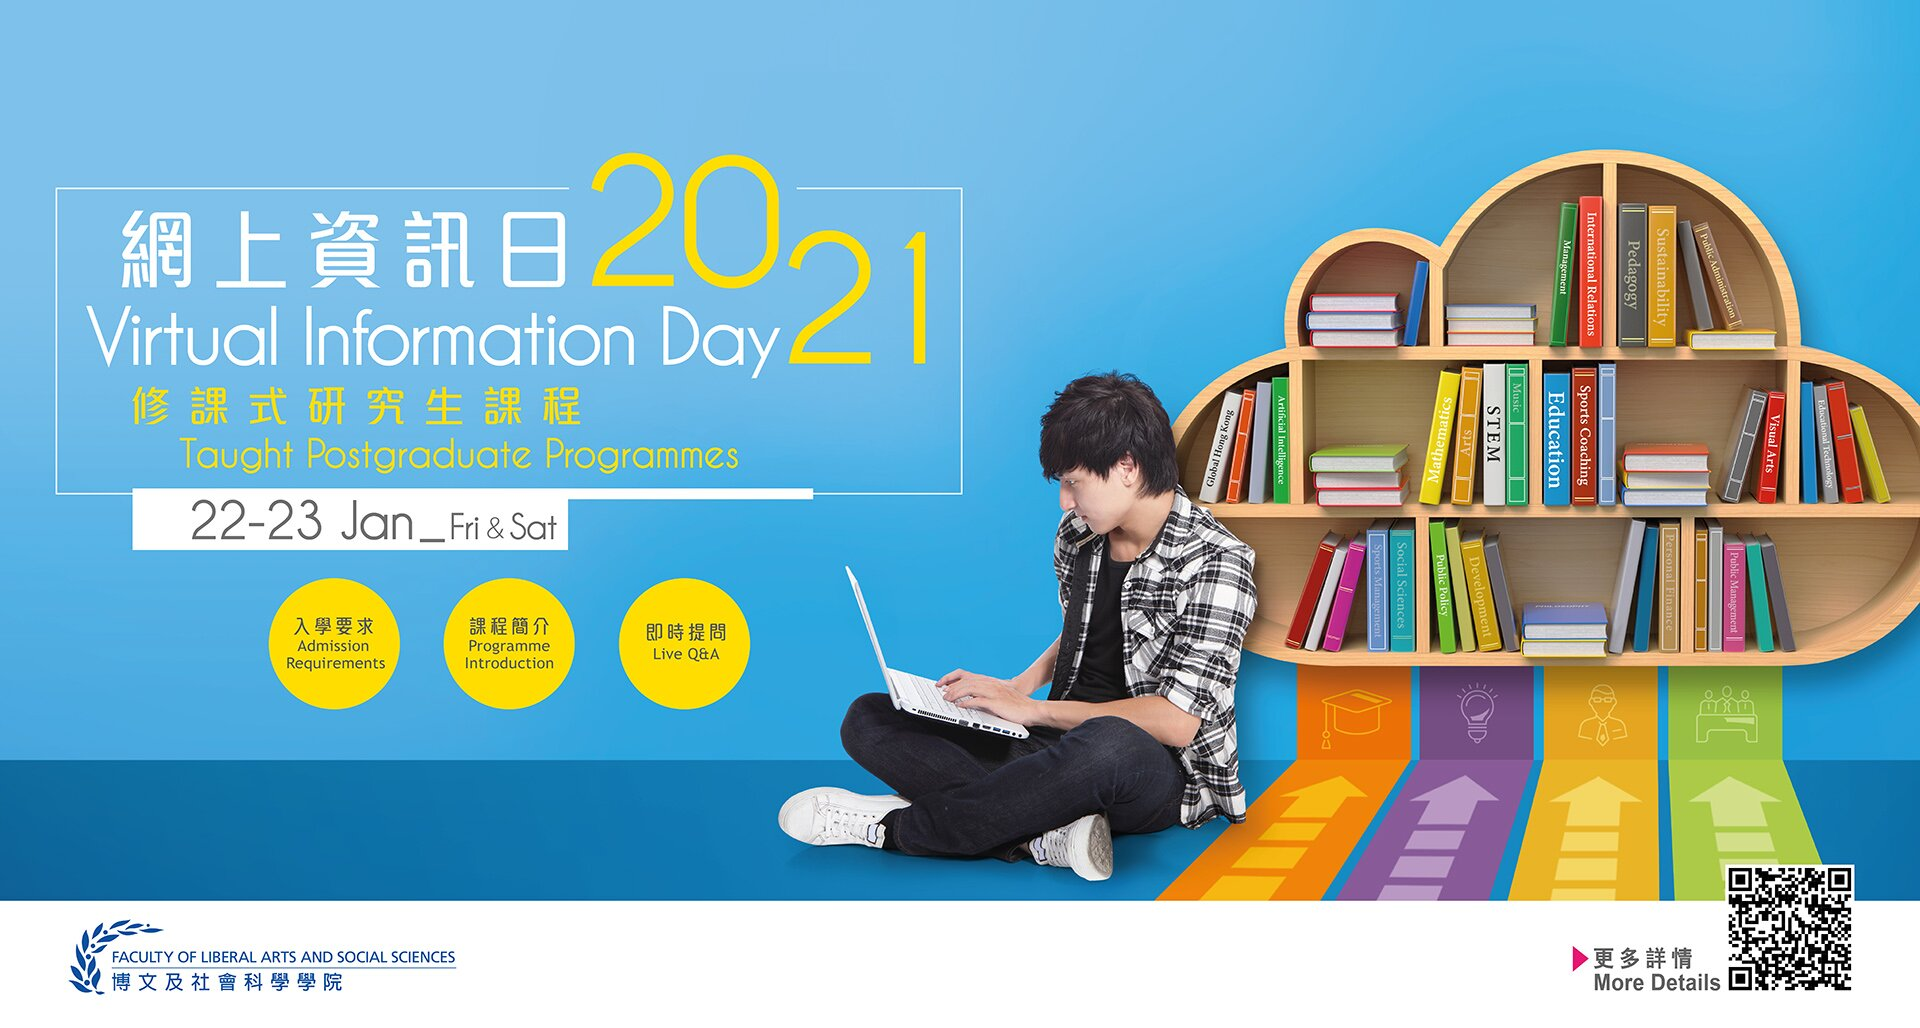 FLASS Virtual Information Day 2021 for Taught Postgraduate Programmes